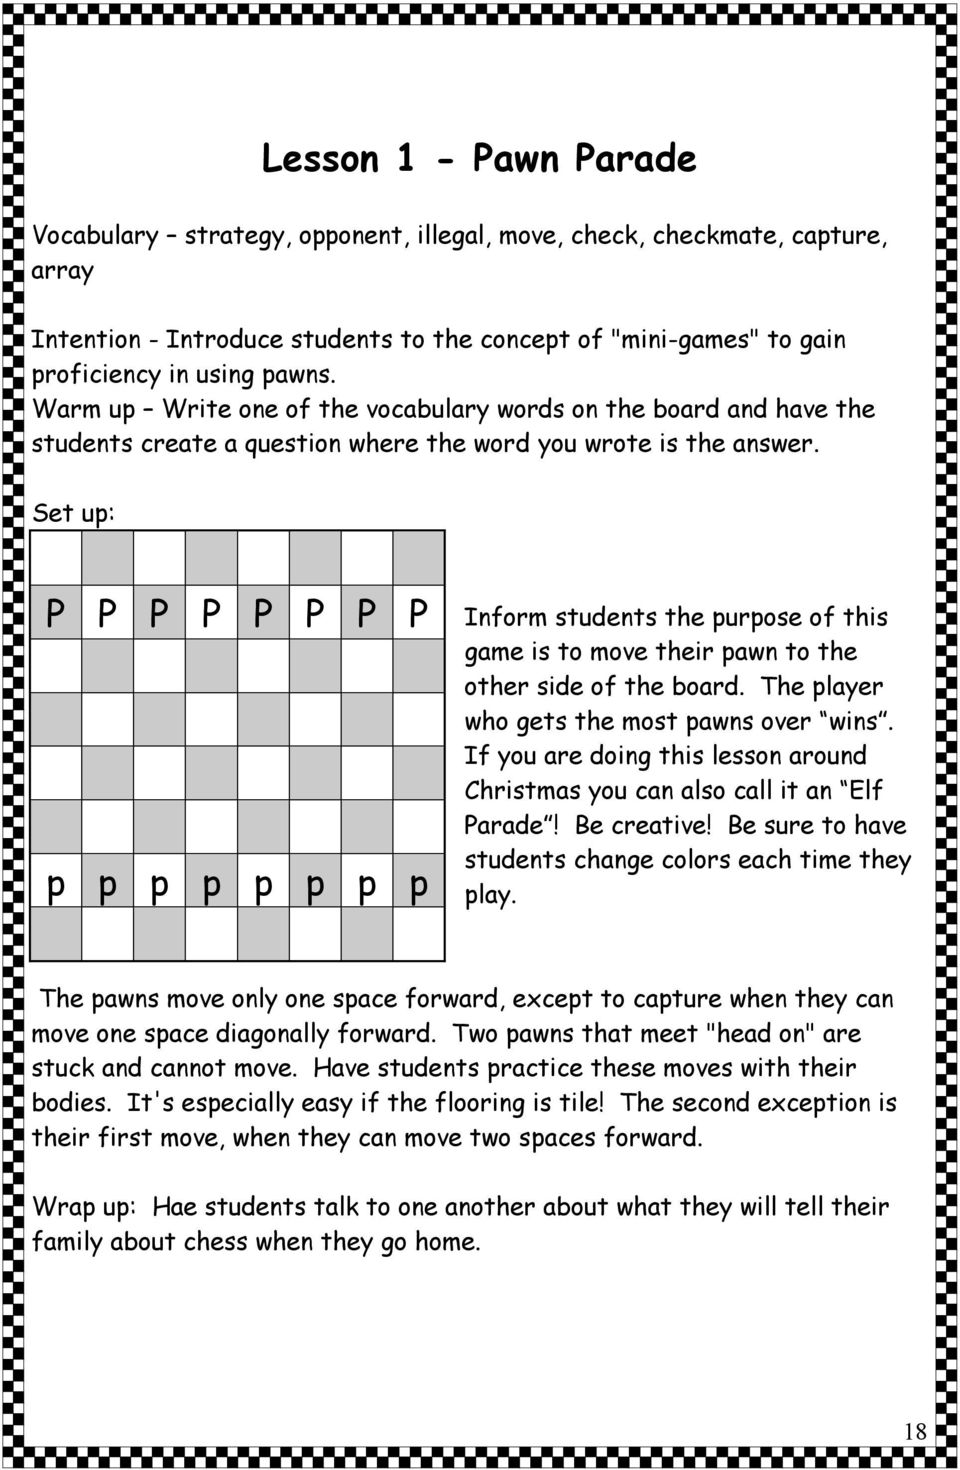 Set up: P P P P P P P P p p p p p p p p Inform students the purpose of this game is to move their pawn to the other side of the board. The player who gets the most pawns over wins.